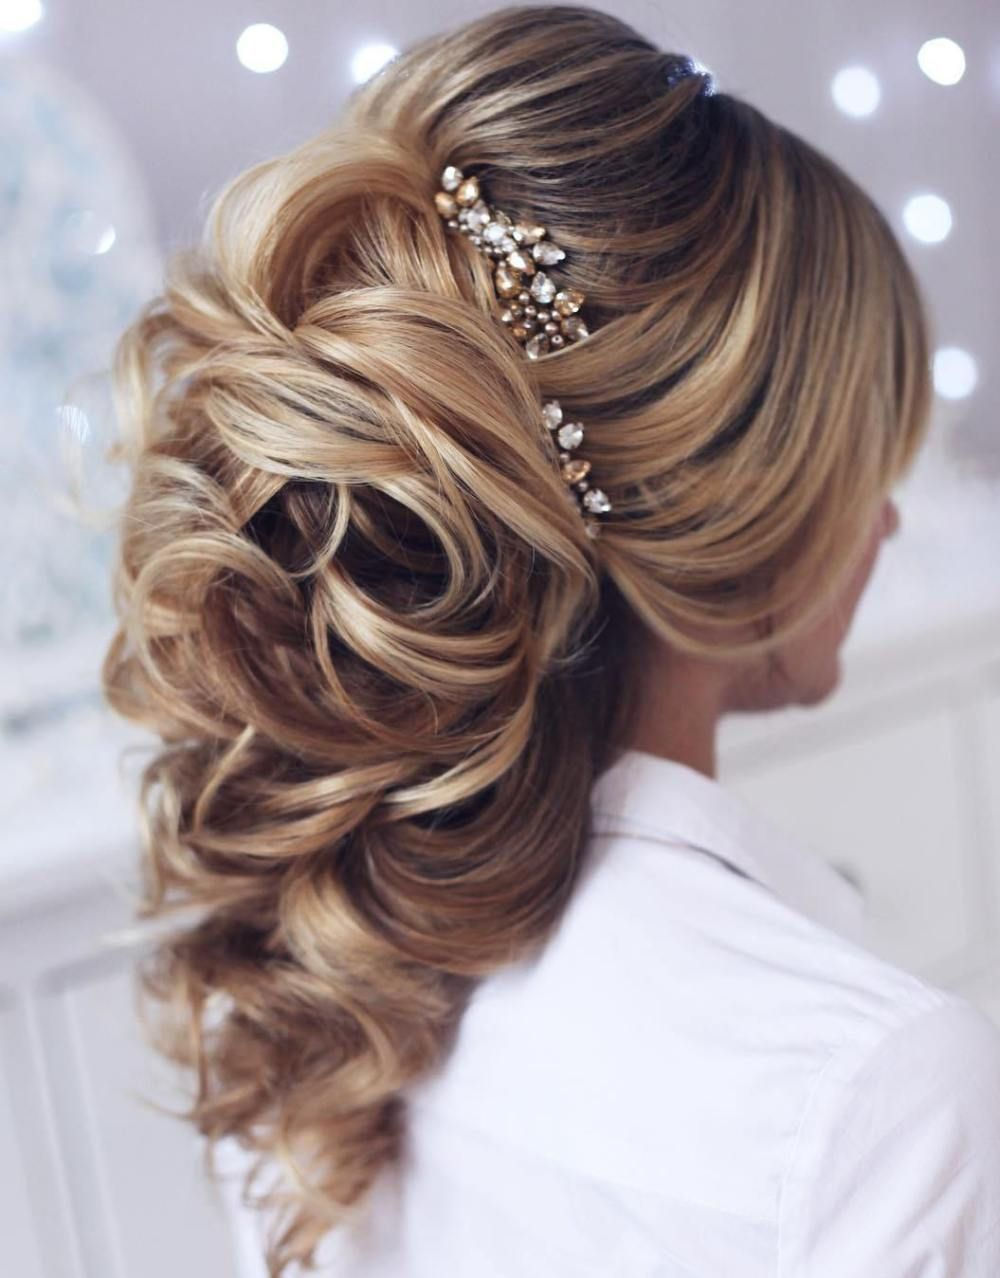 40 gorgeous wedding hairstyles for long hair | bouffant hair